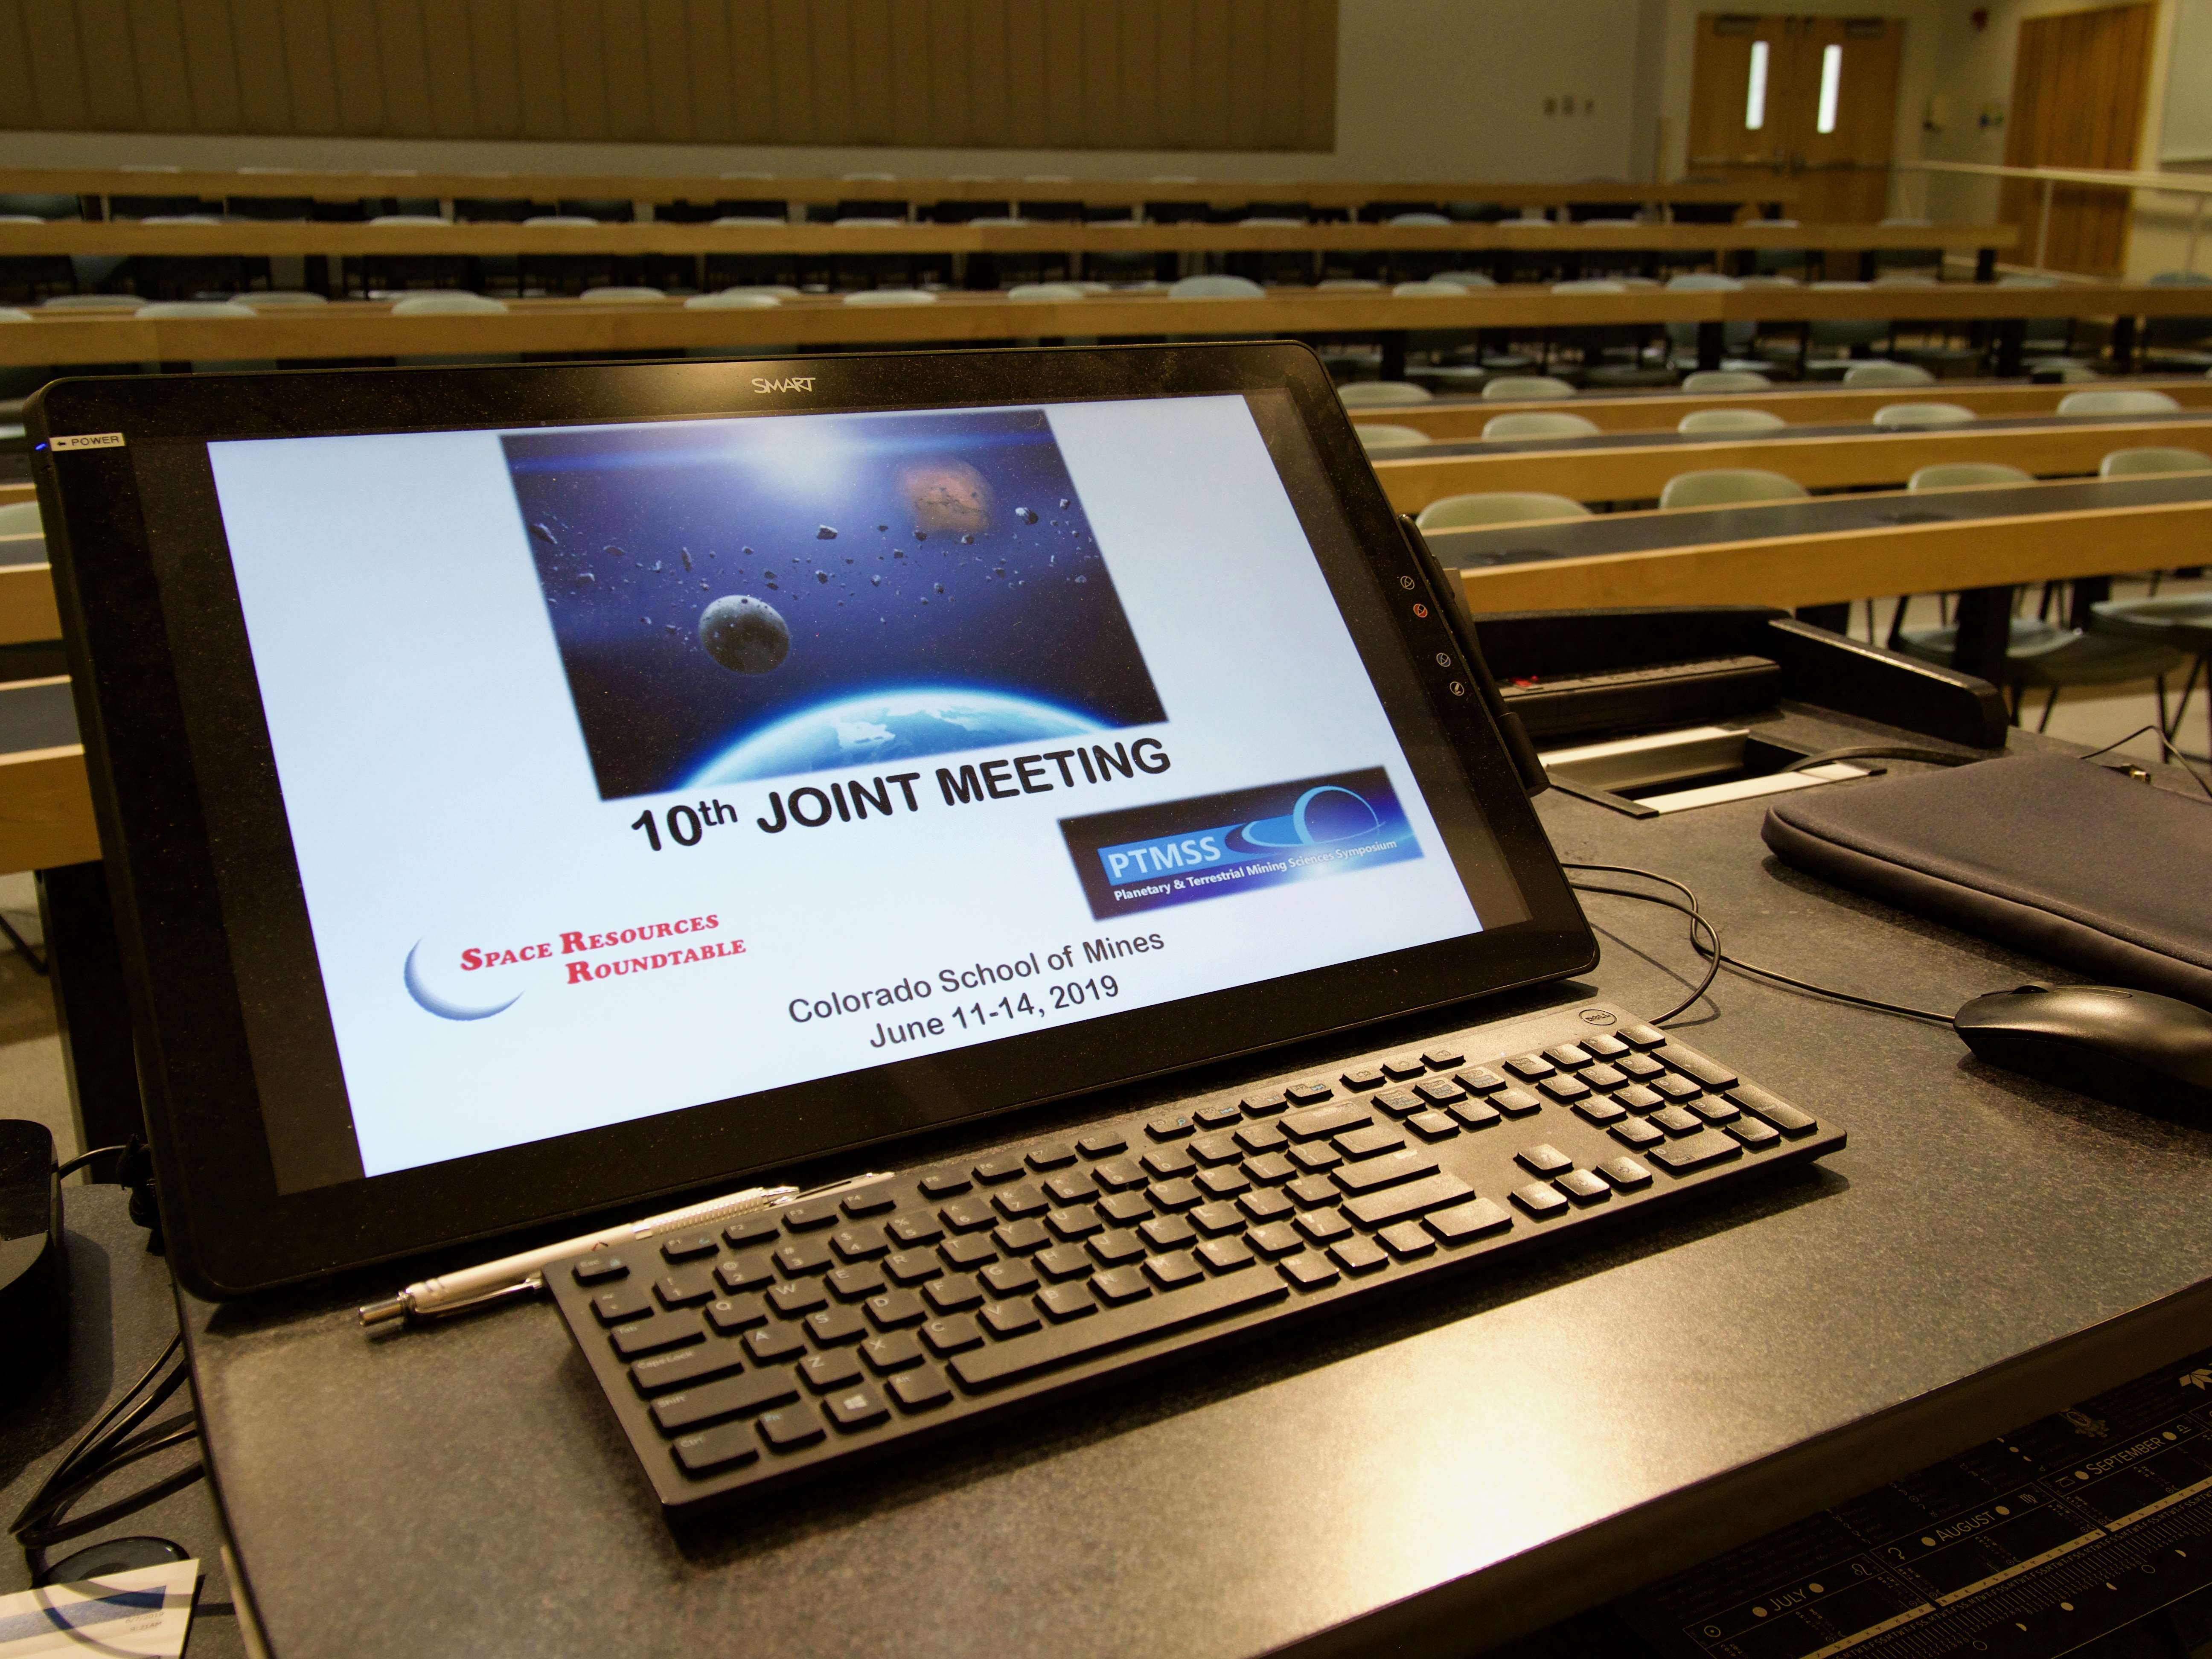 ISRU Info : Home of the Space Resources Roundtable